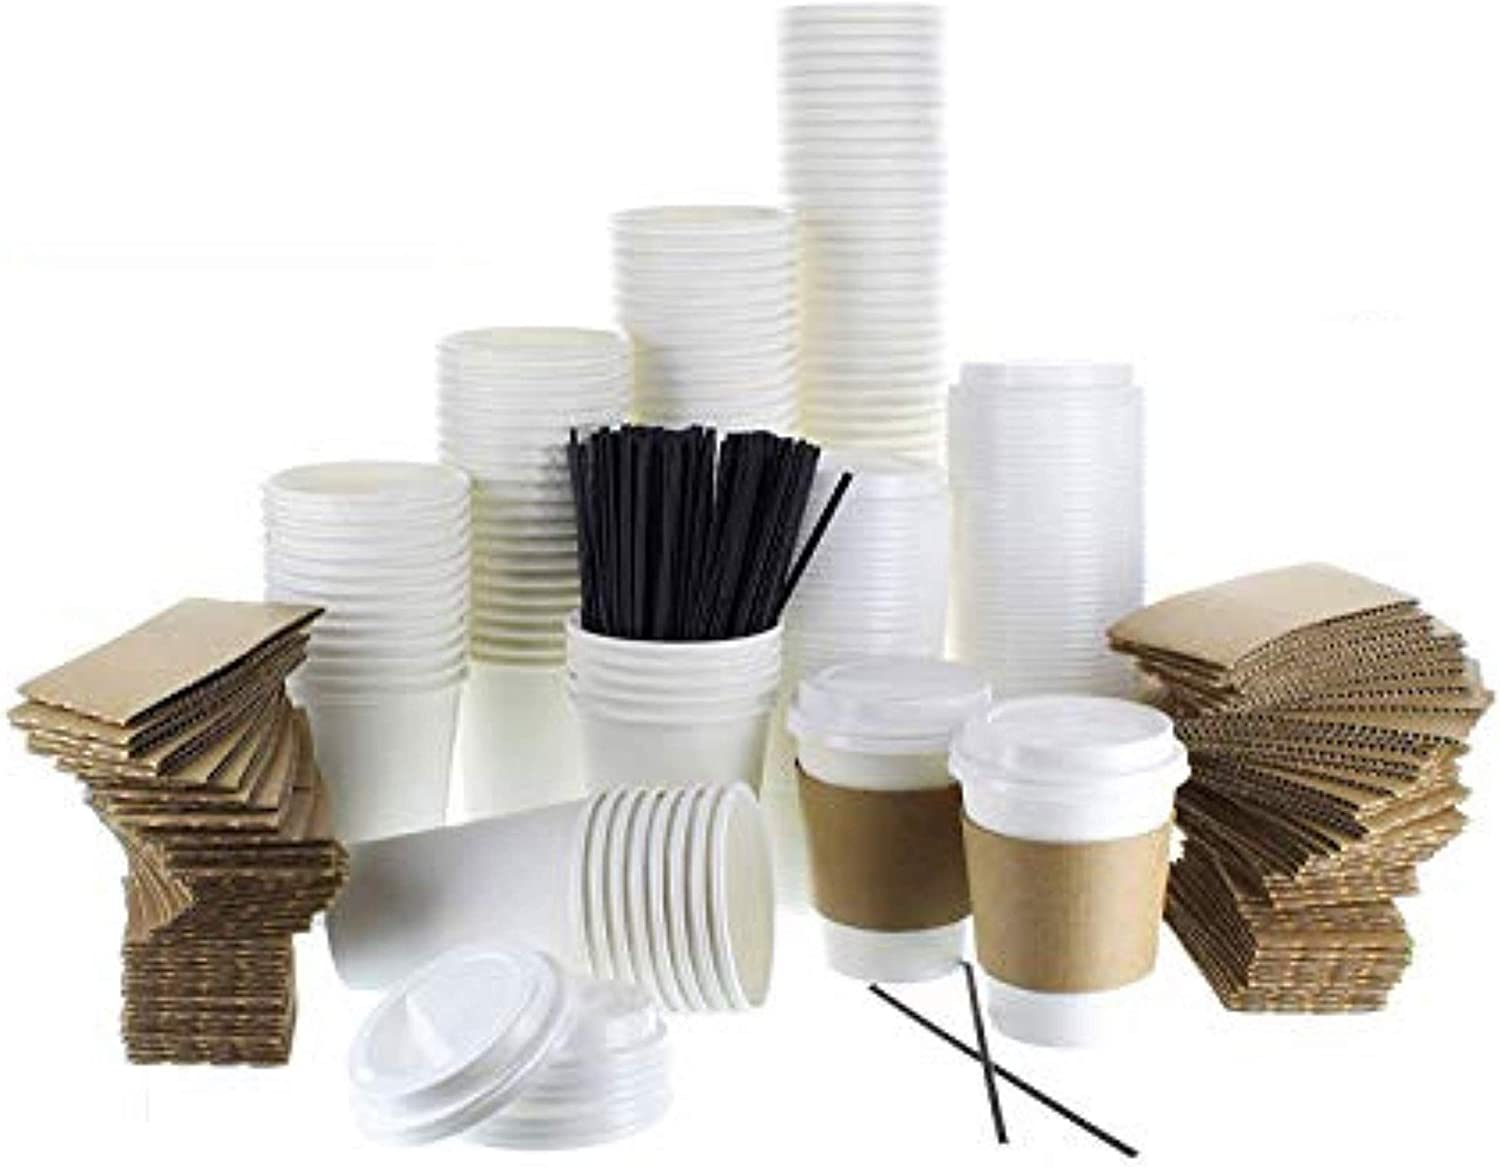 {120 COUNT} JUMBO Pack White Coffee Cups | Insulated Disposable Hot Cups with Lids, Sleeves & Stirrers for Tea, Chocolate | Perfect for To Go Travel